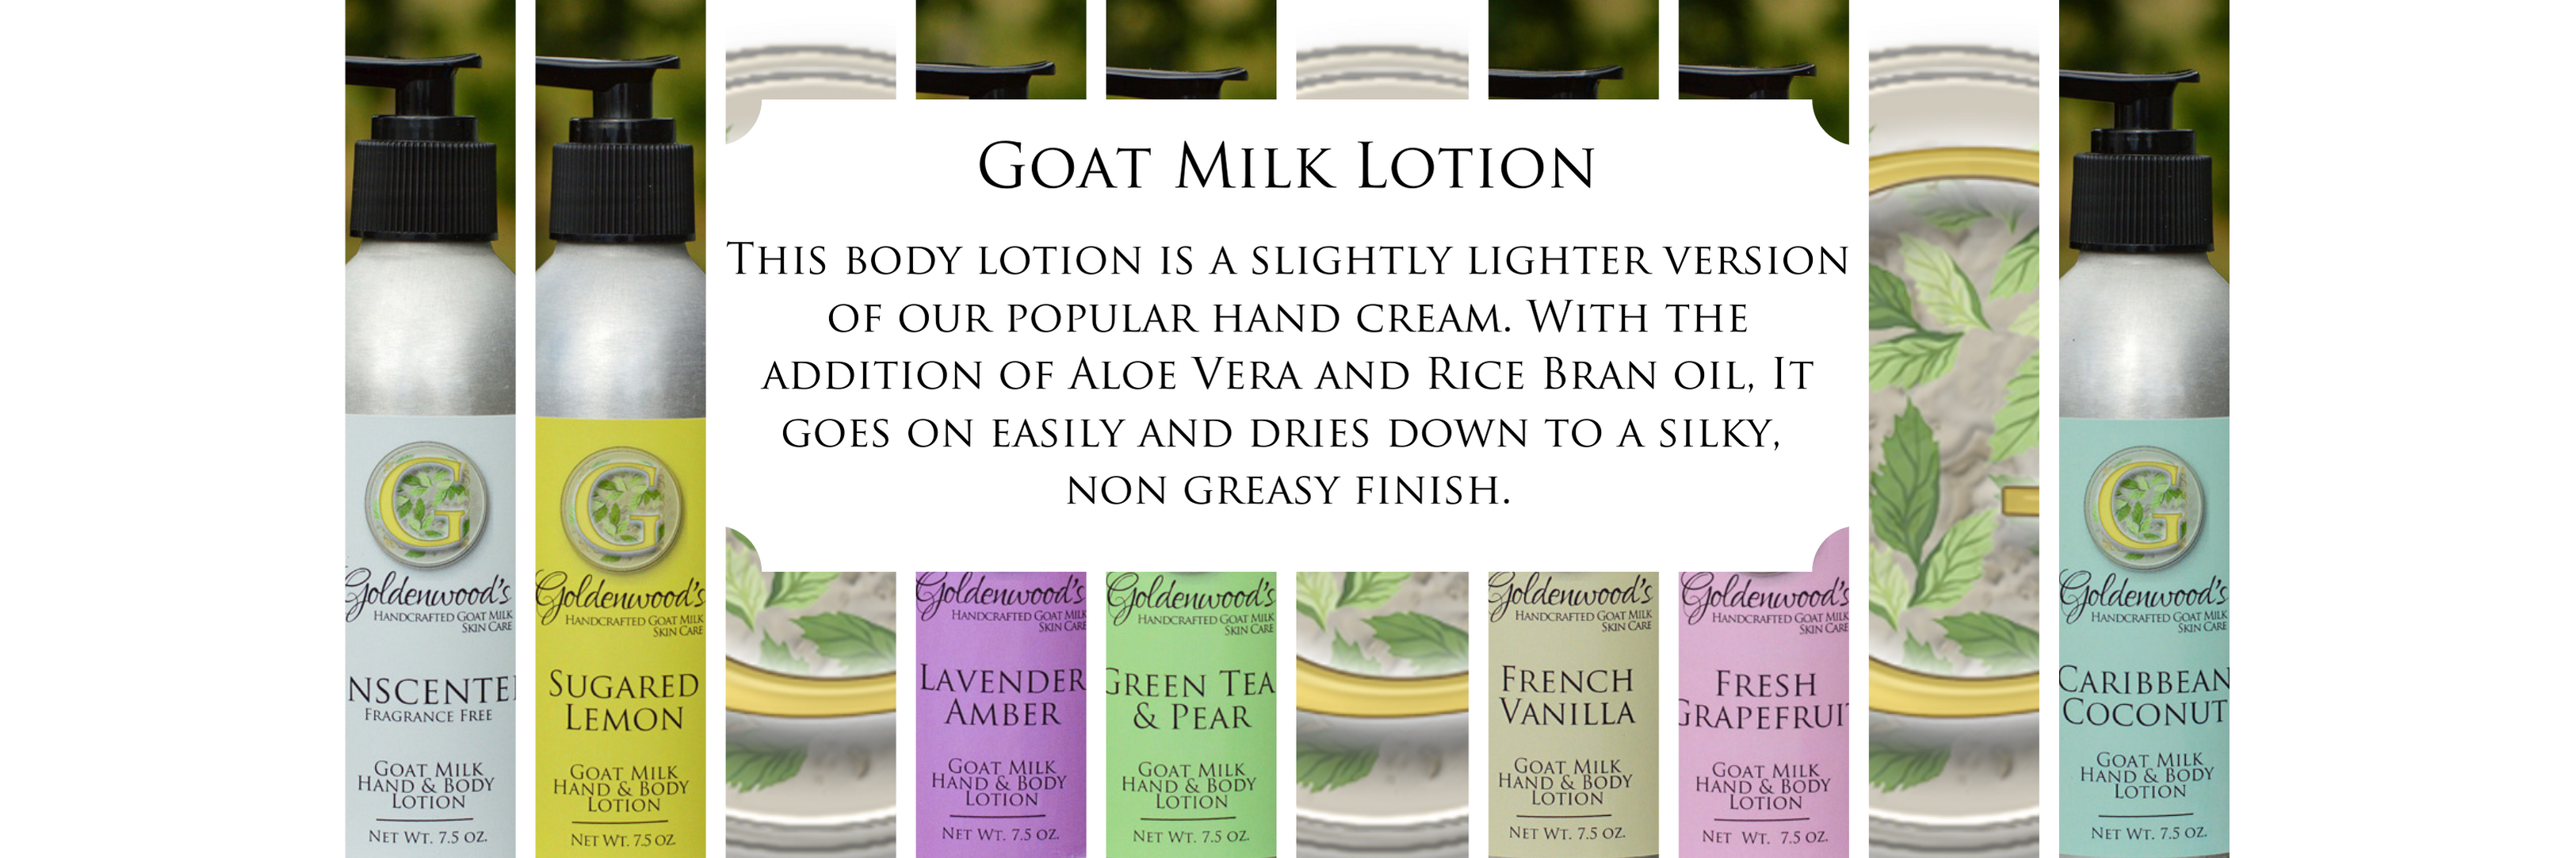 lotion-category-image2-2-.png